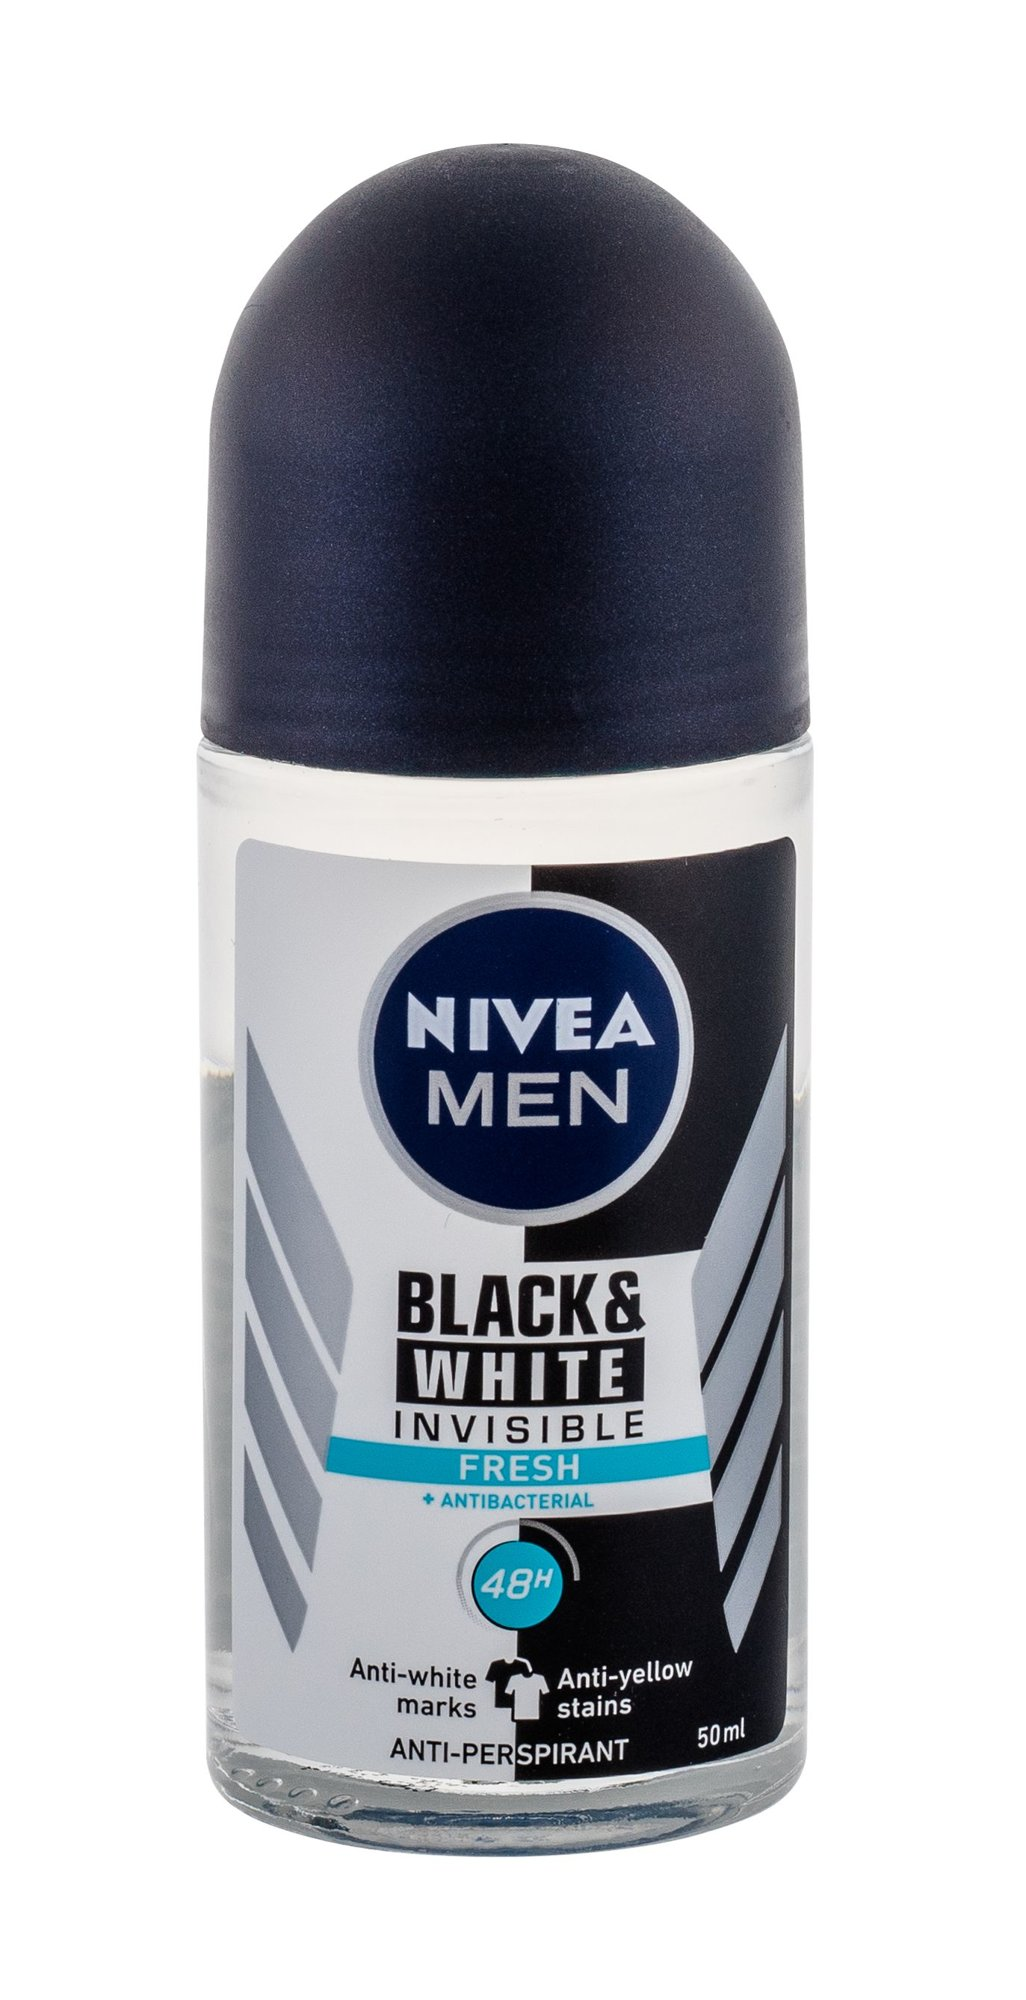 Nivea Men Invisible For Black & White Fresh (Antiperspirant, M, 50 ml)